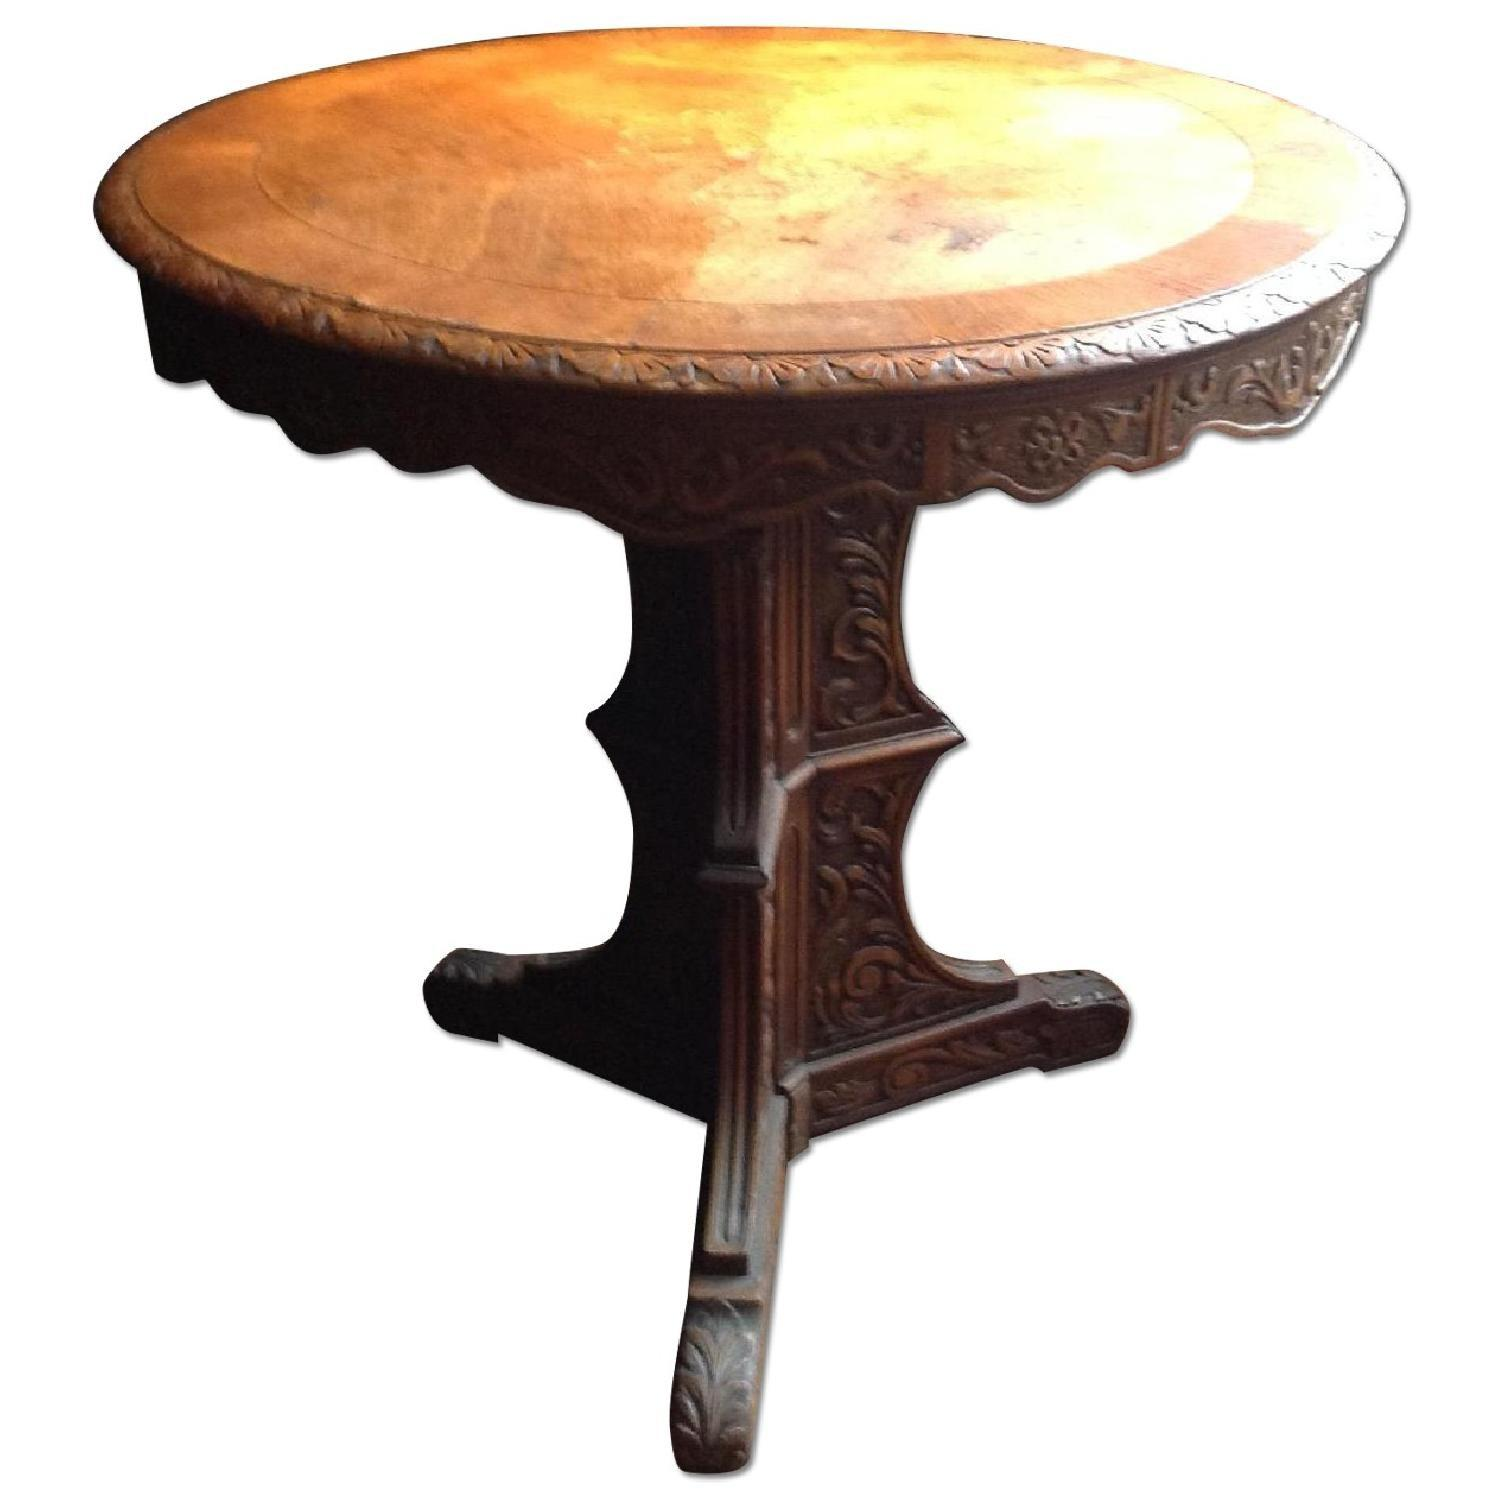 Italian Vintage Carved Wood Baroque Style Round Side Table - image-0